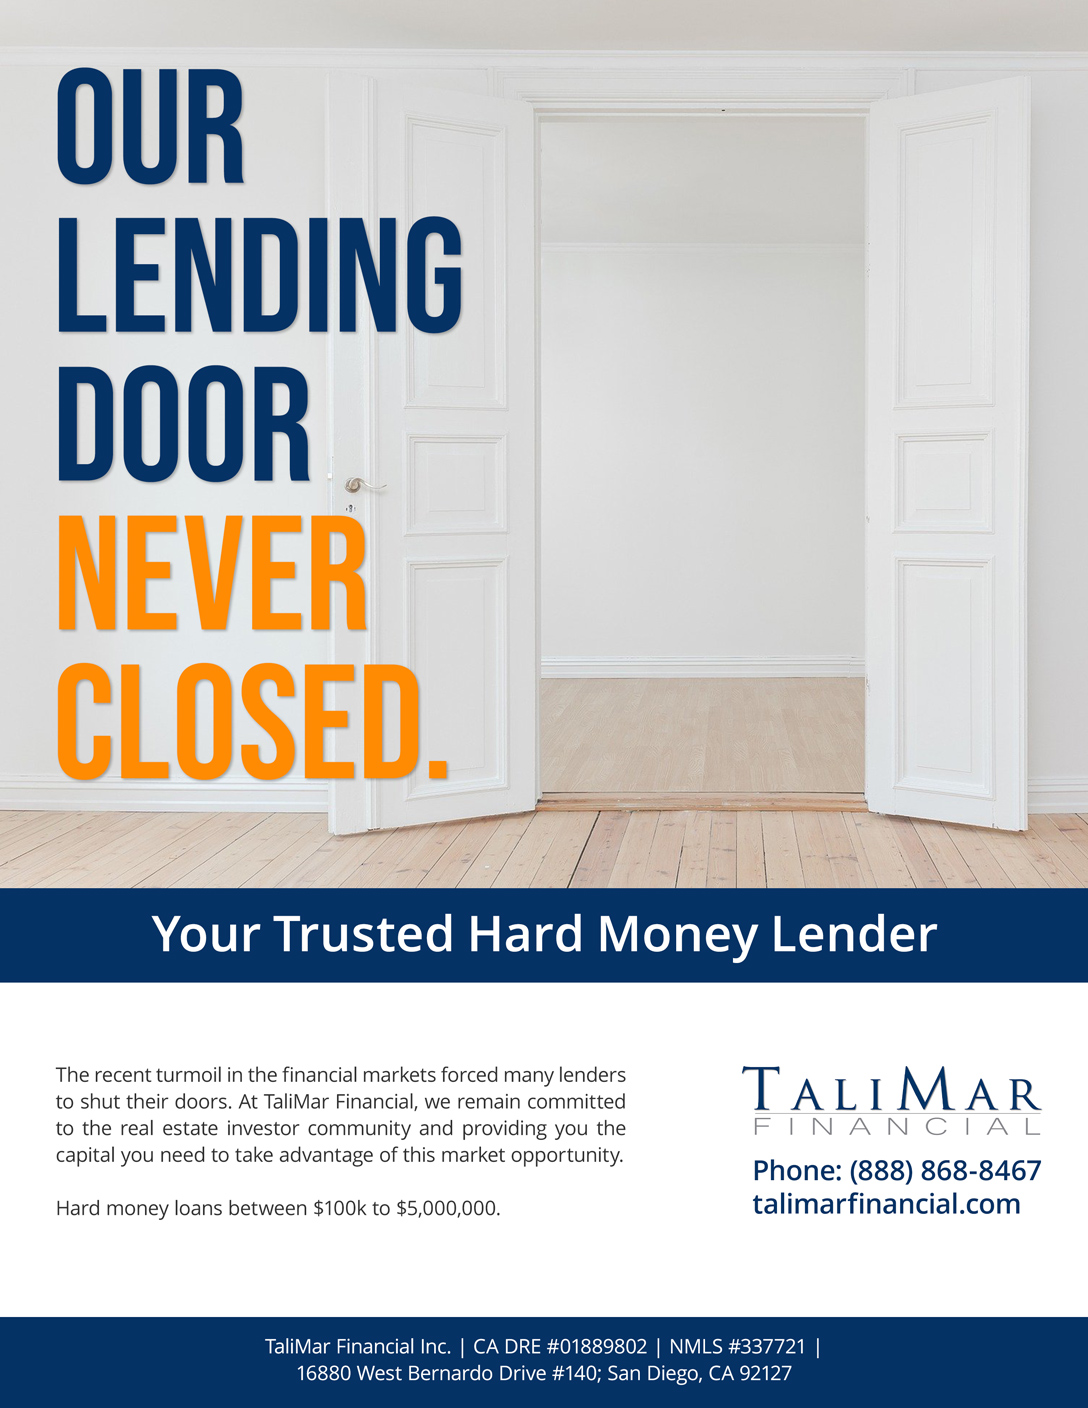 Hard money loan advertisement for TaliMar Financial showing that we are still funding private money loans.